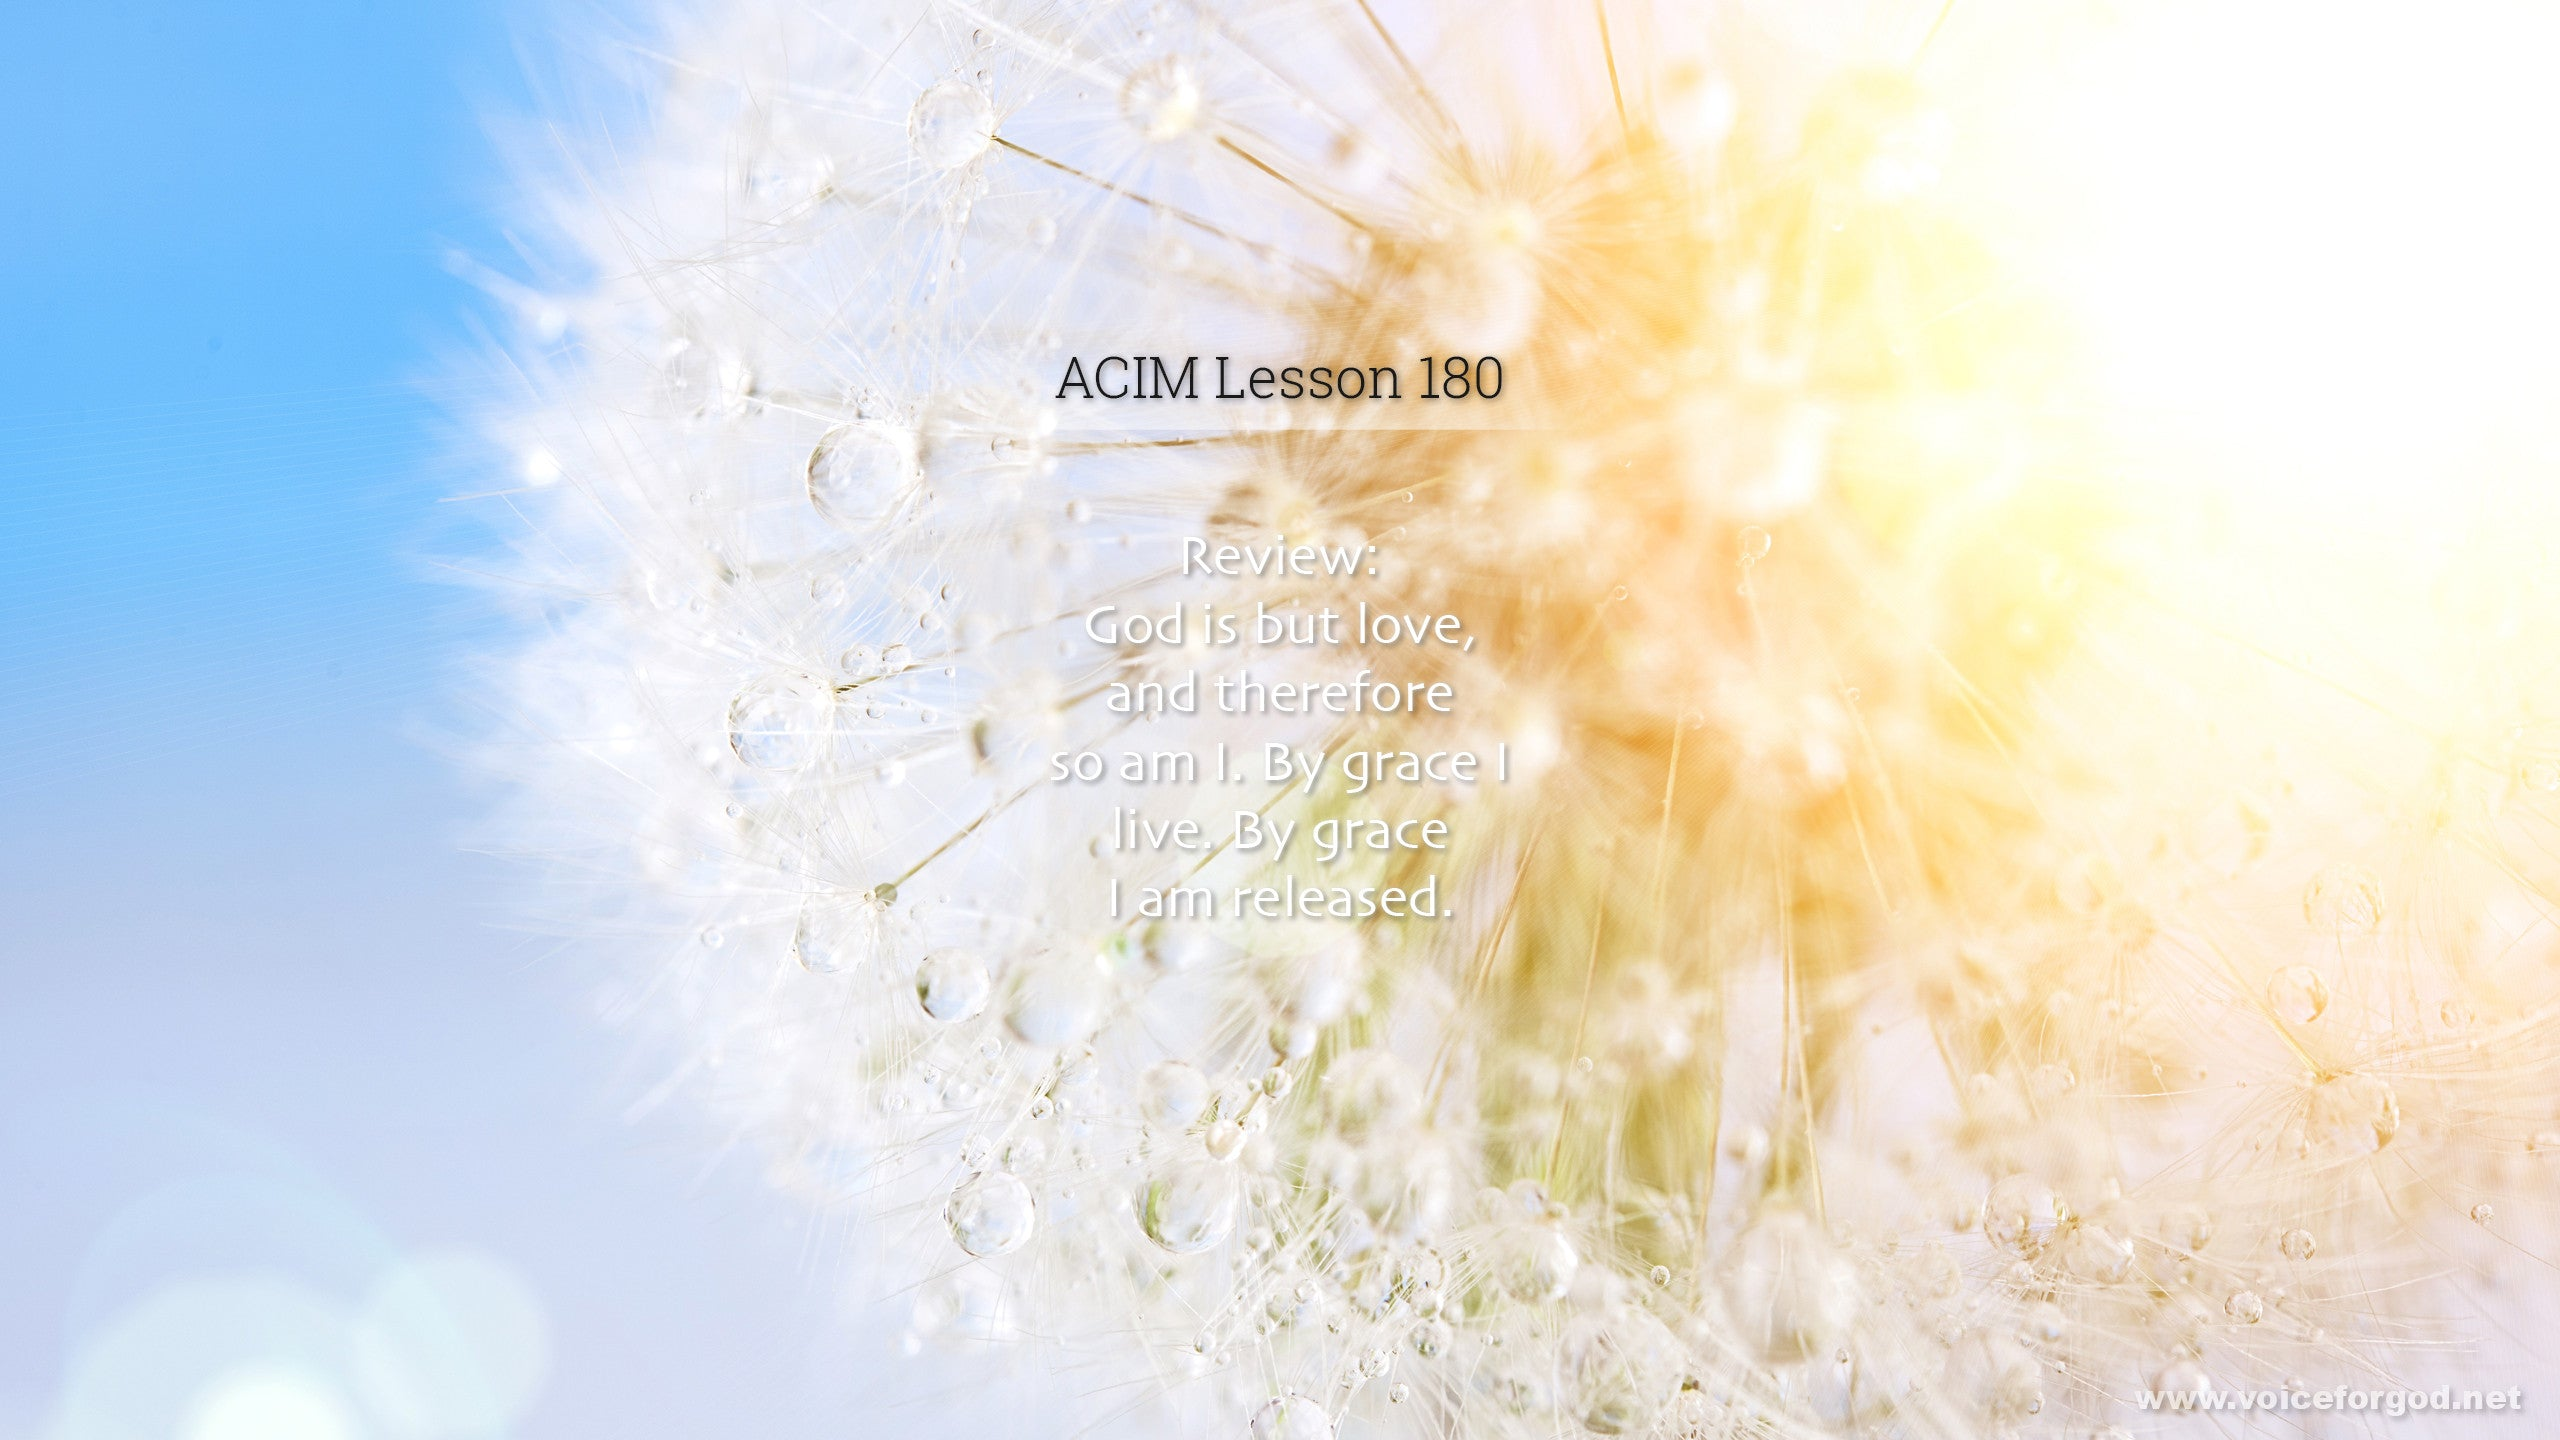 ACIM Lesson 180 - A Course in Miracles Workbook Lesson 180